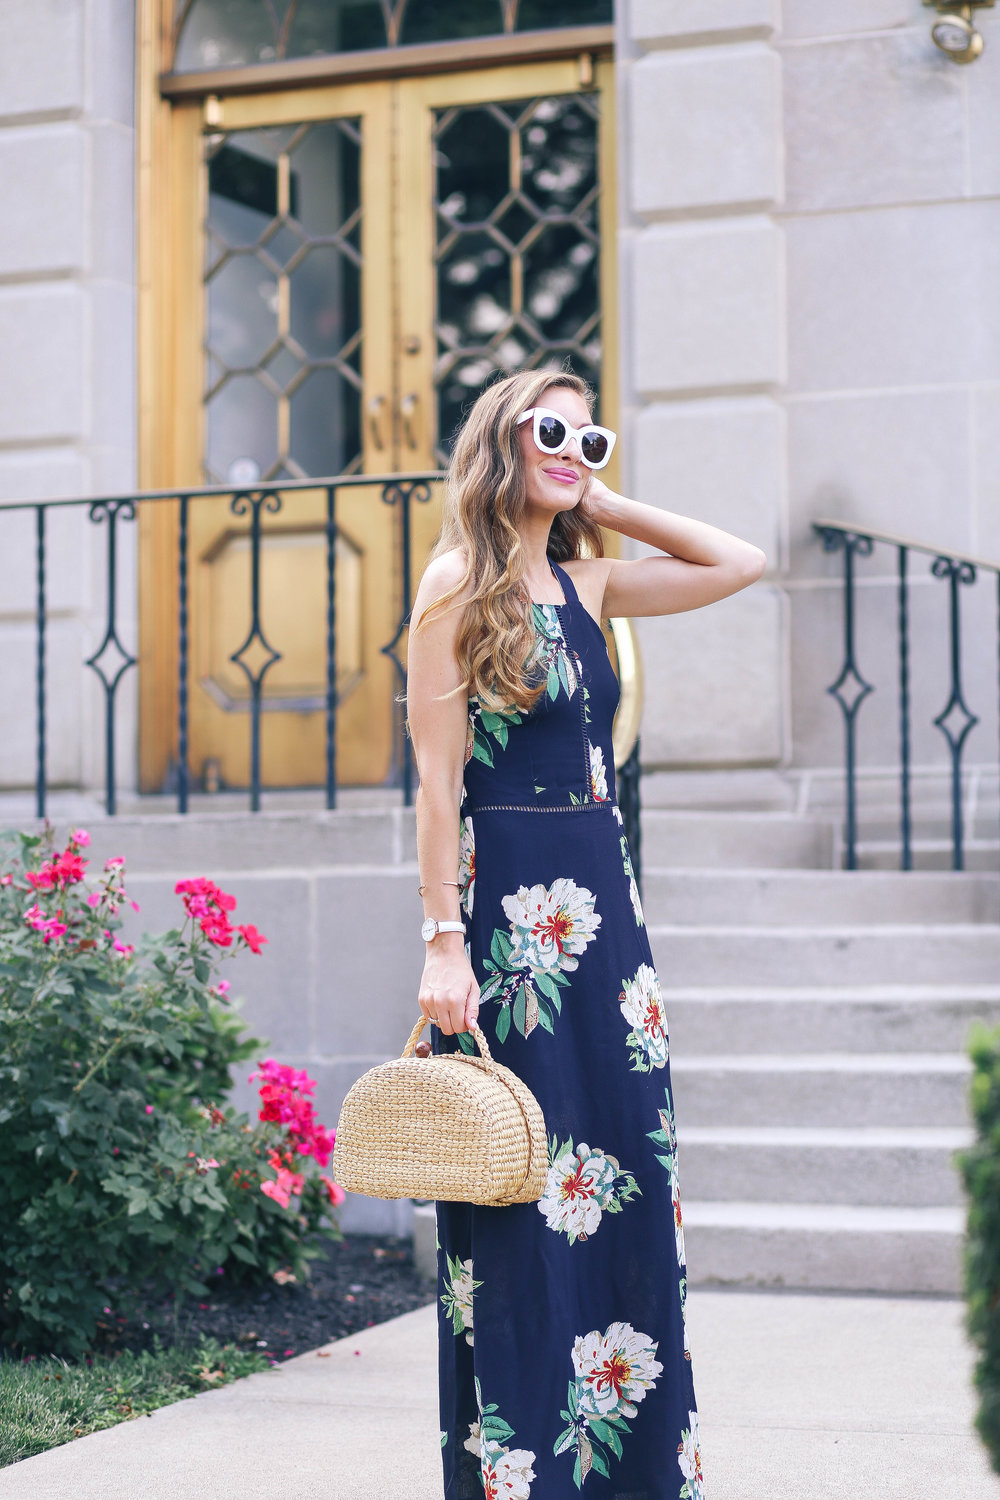 The Floral Maxi Dress- Enchanting Elegance